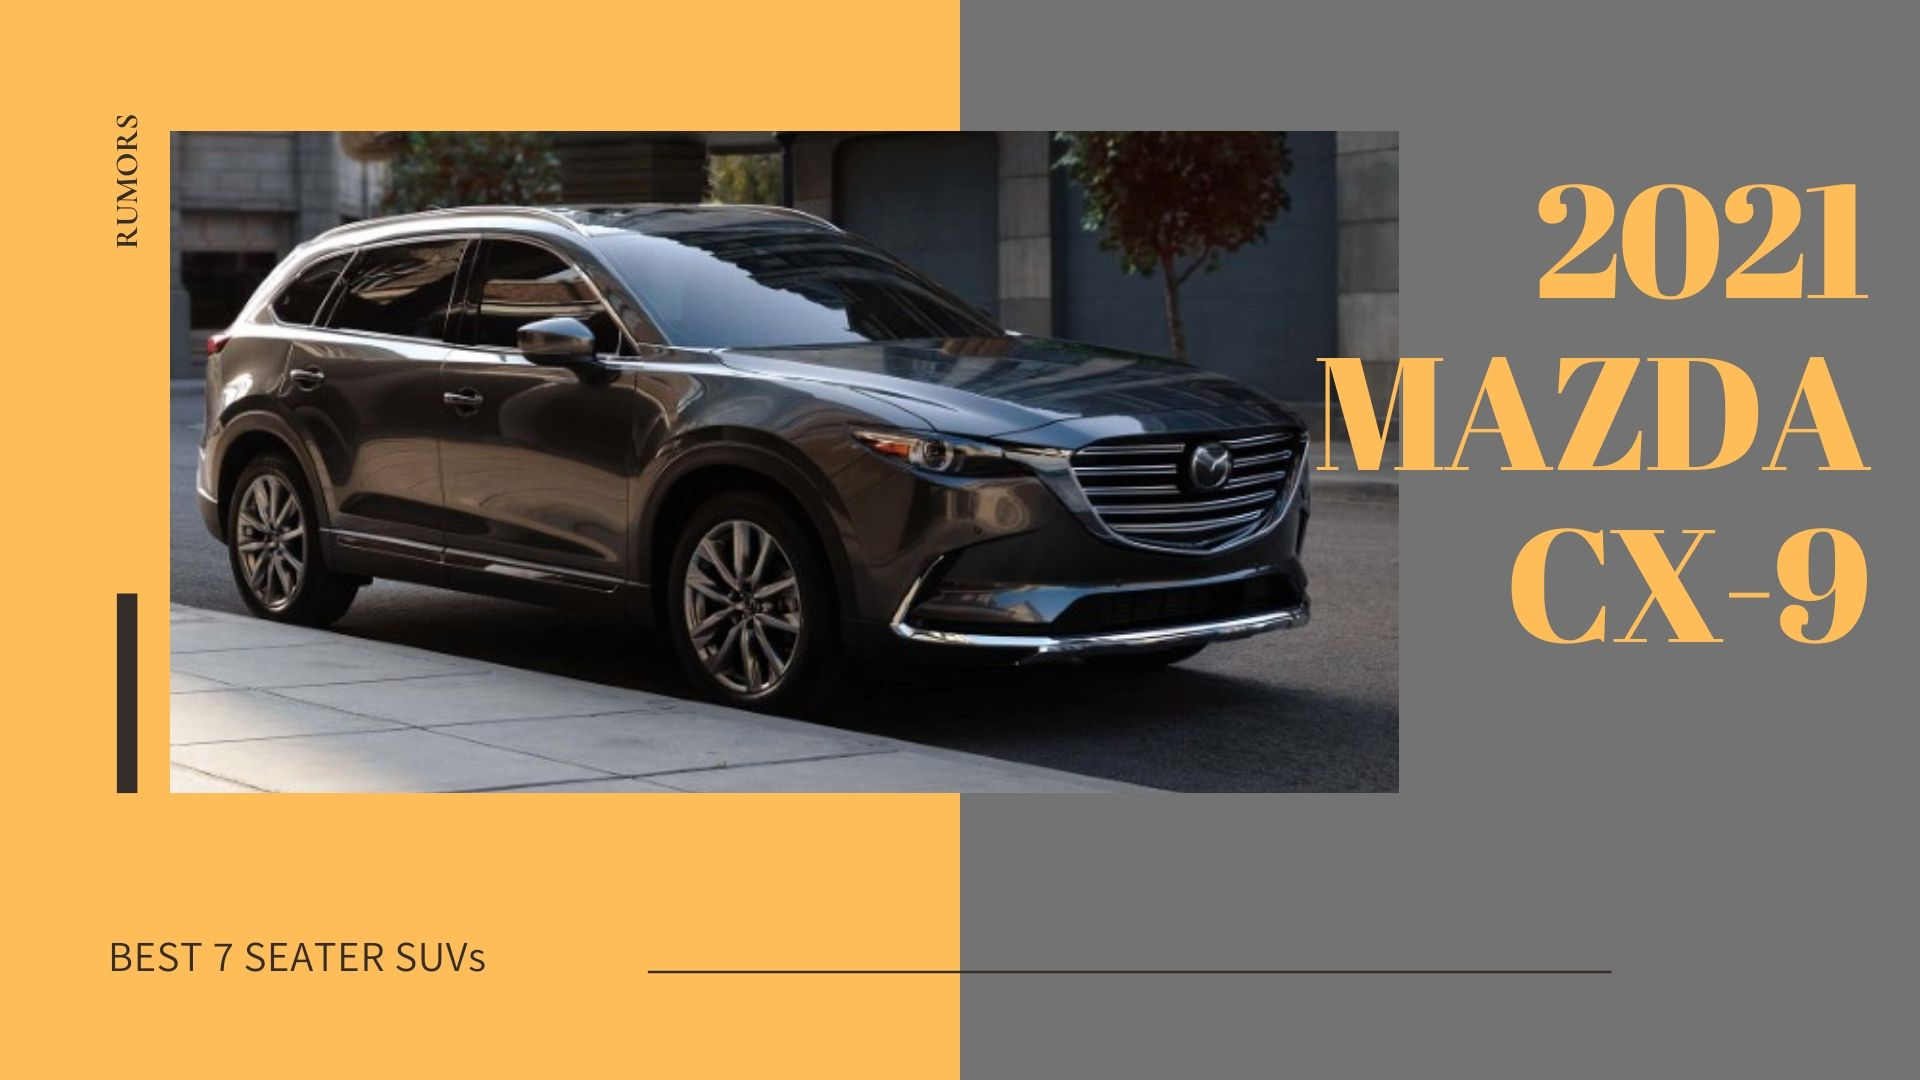 2021 Mazda CX-9 Redesign Exterior & Interior